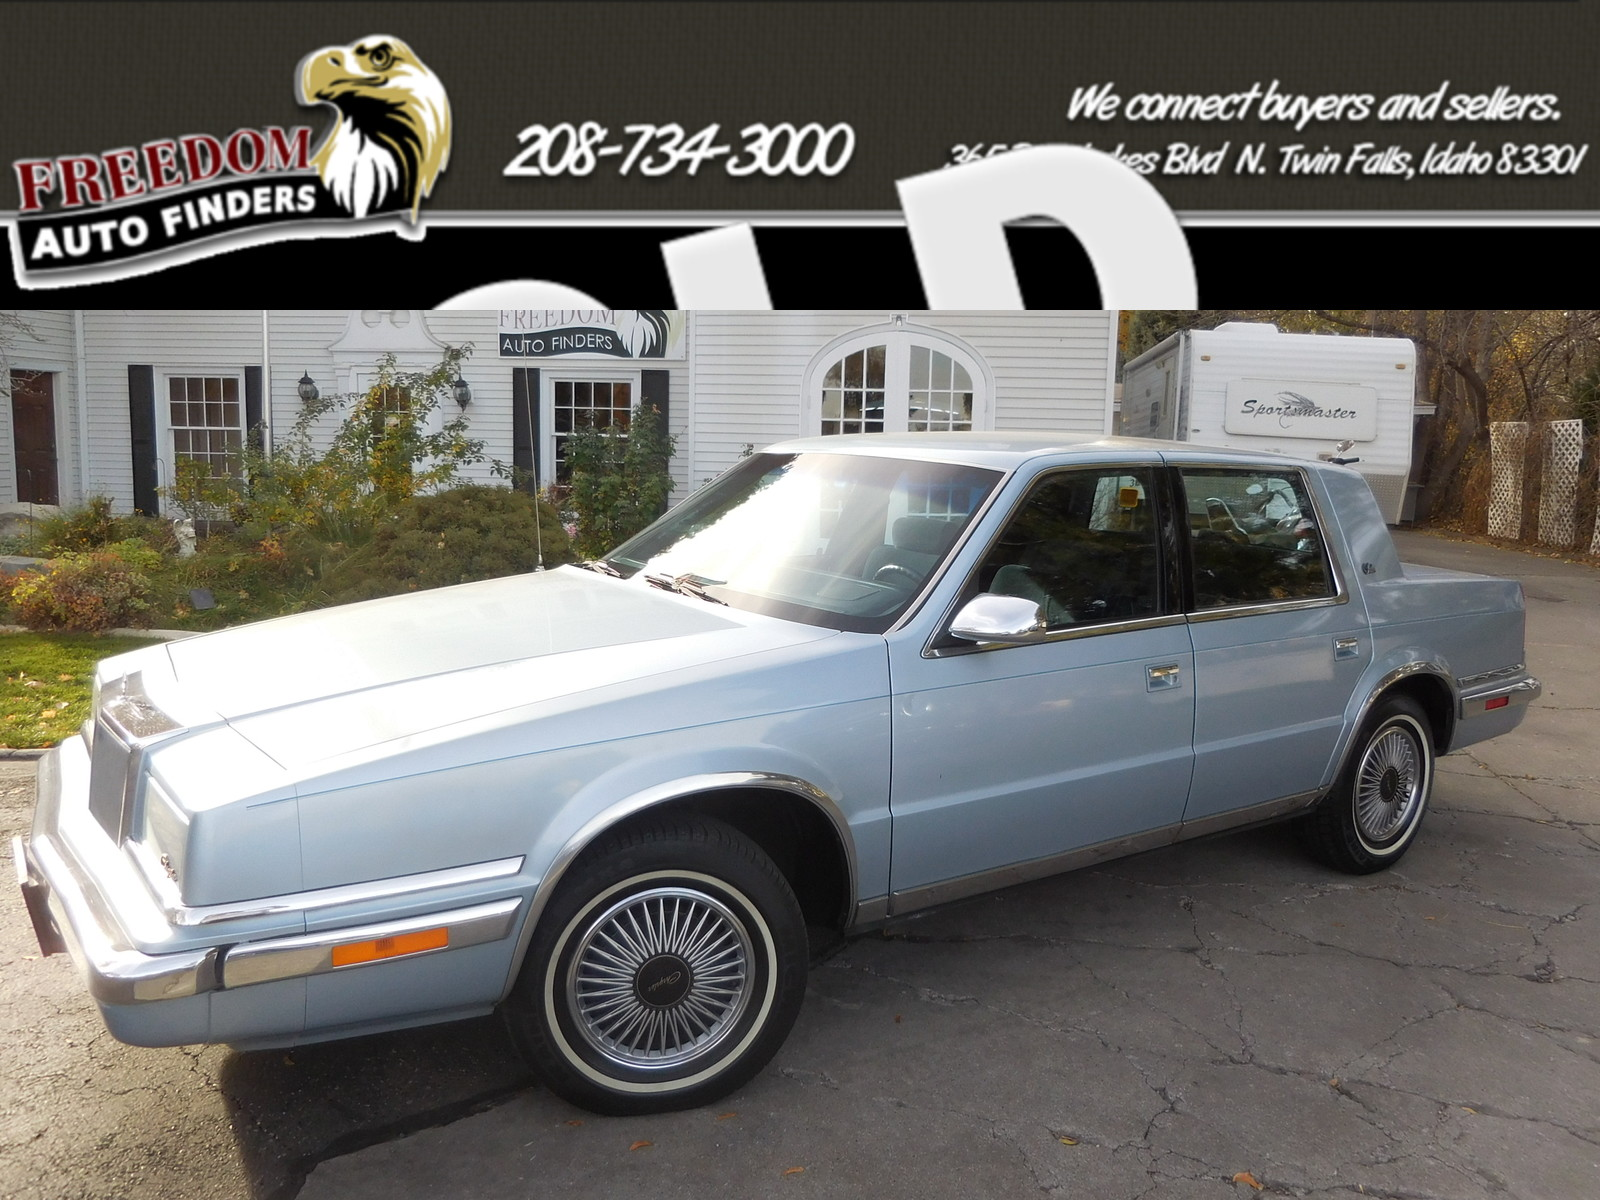 1991 chrysler new yorker salon lee iacocca original car for 1993 chrysler new yorker salon sedan